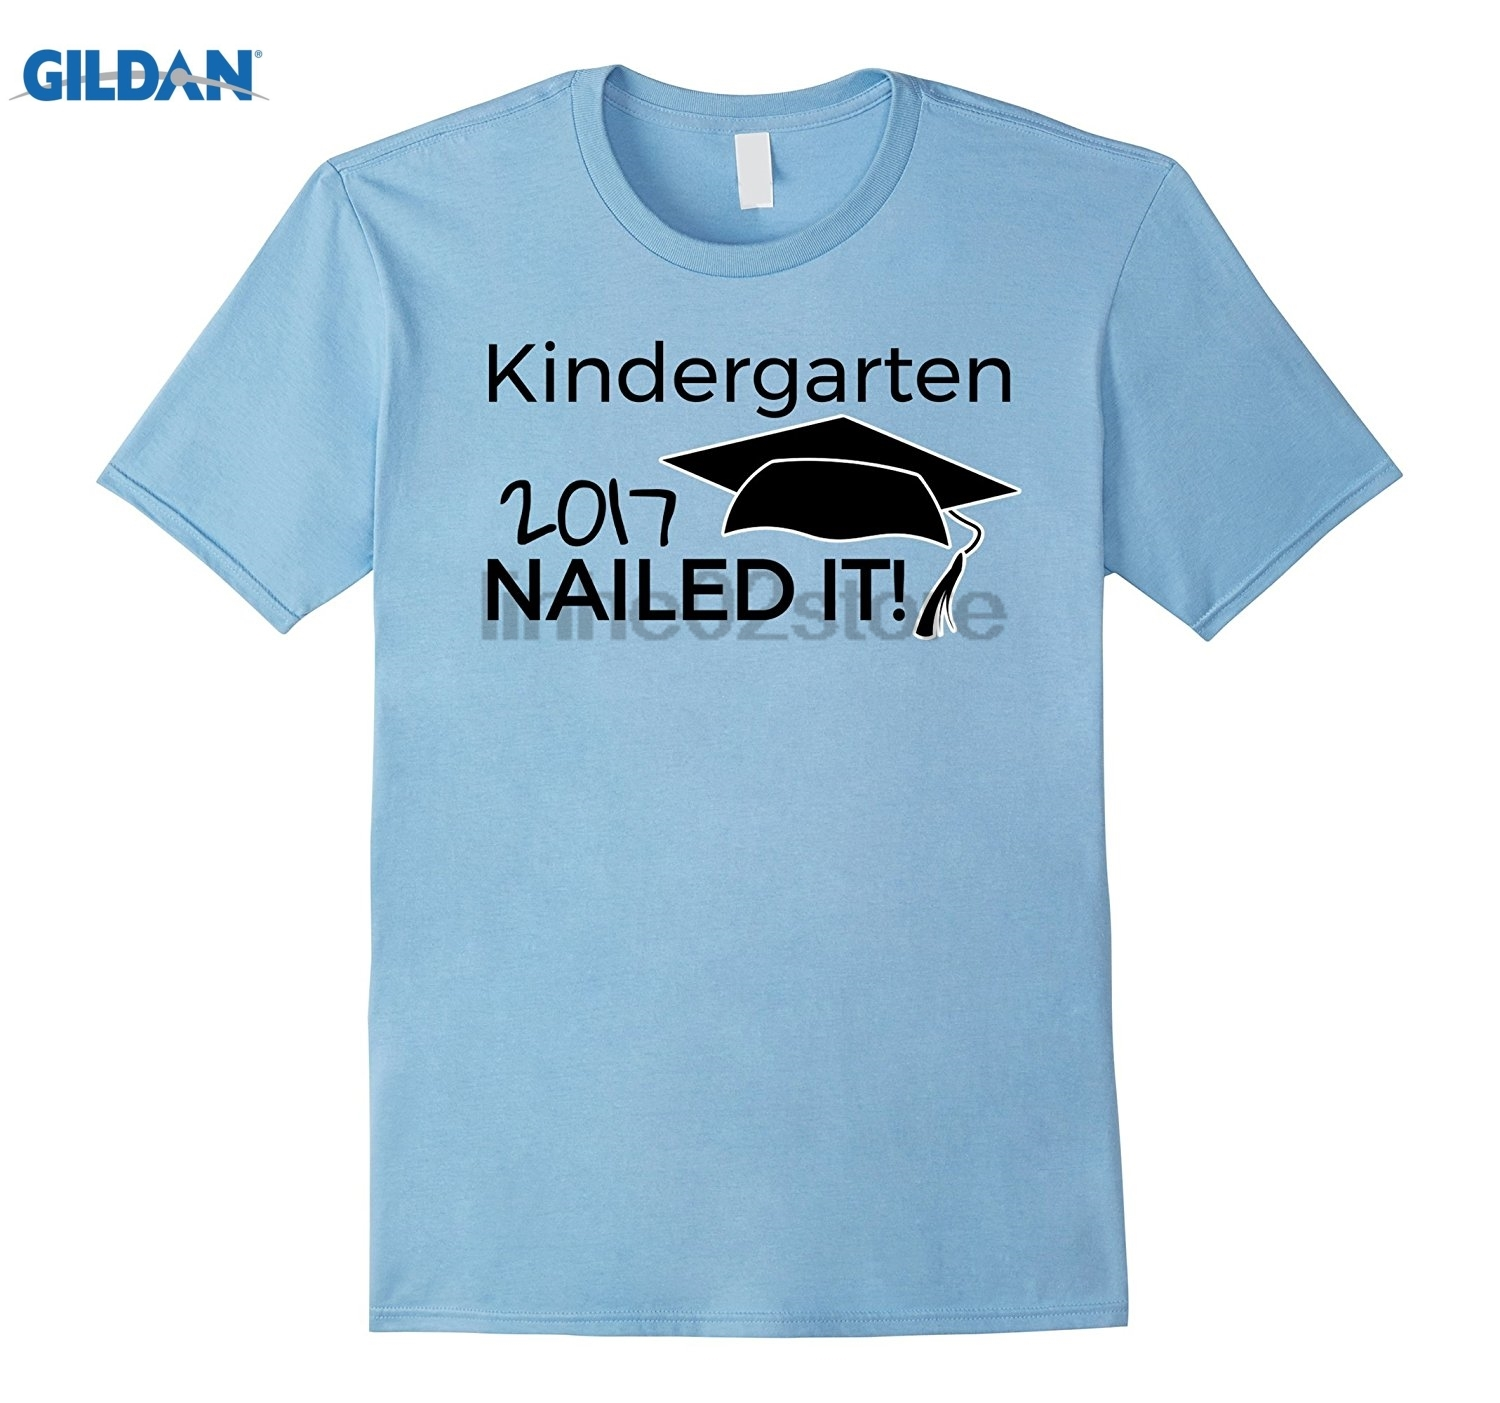 Gildan Kindergarten Nailed It Graduation T Shirt Tot